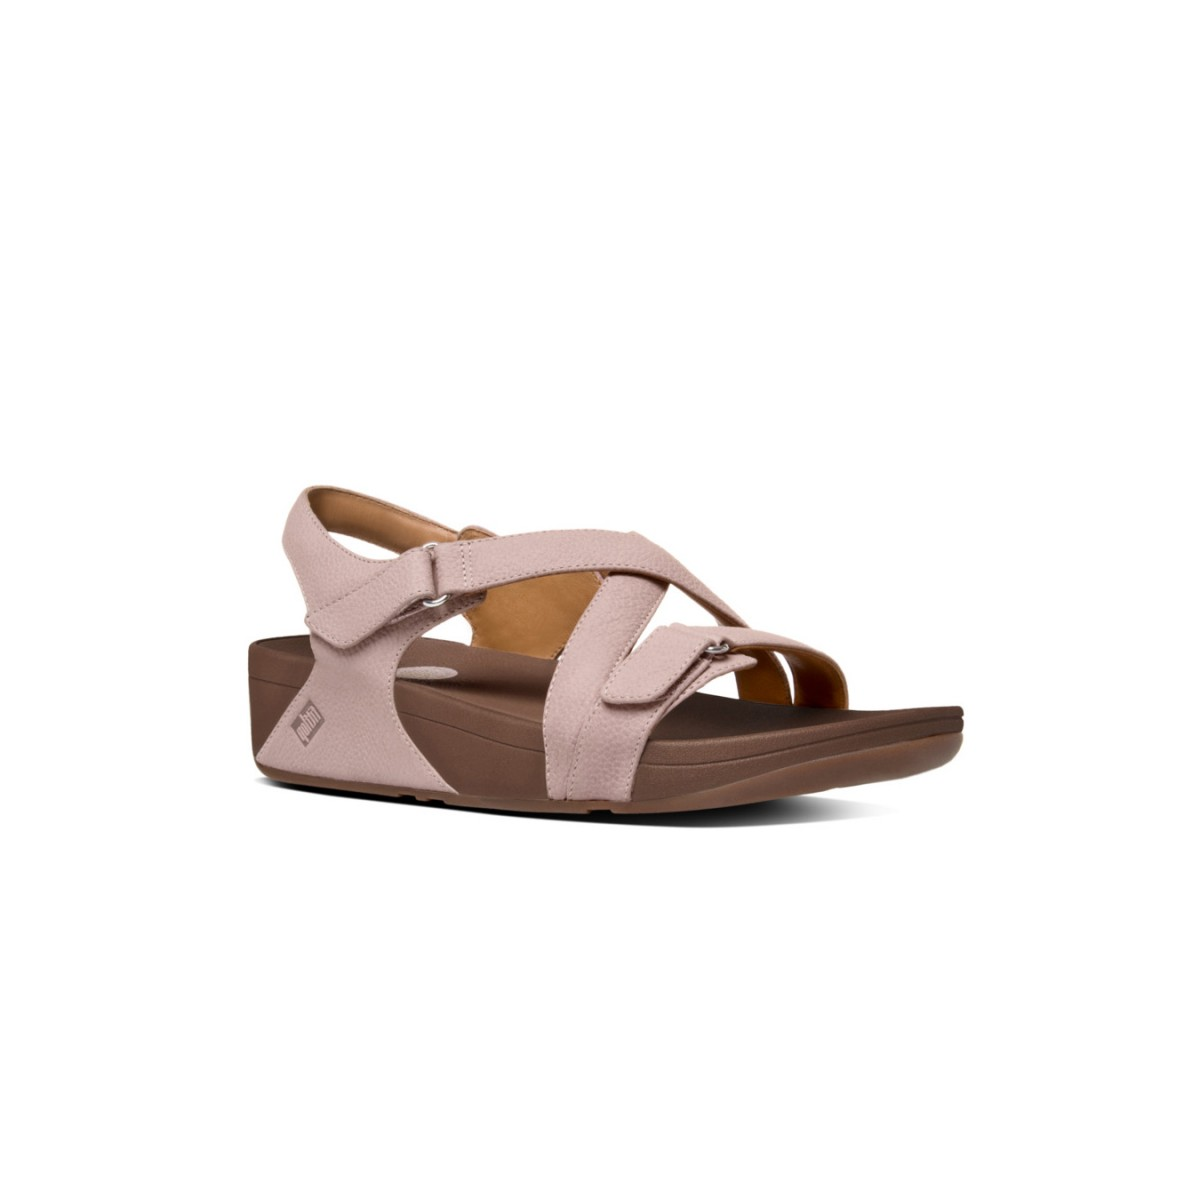 FitFlop The Skinny™ Sandal Stone-35